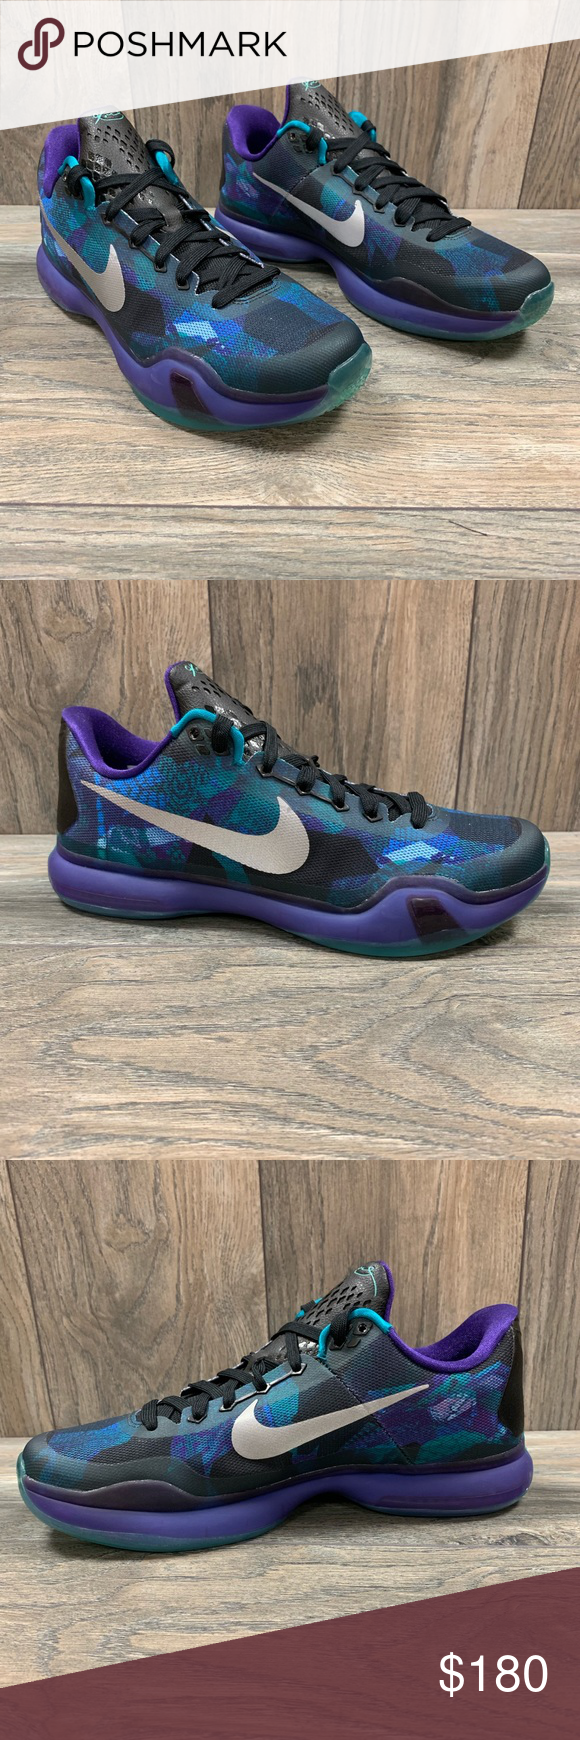 c2a4799271e ... Nike Kobe X Overcome Emerald Purple Basketball Shoes New without box  705317-305 Release date  8 27 2015 Colorway  emerald glow  reflect silver    court ...